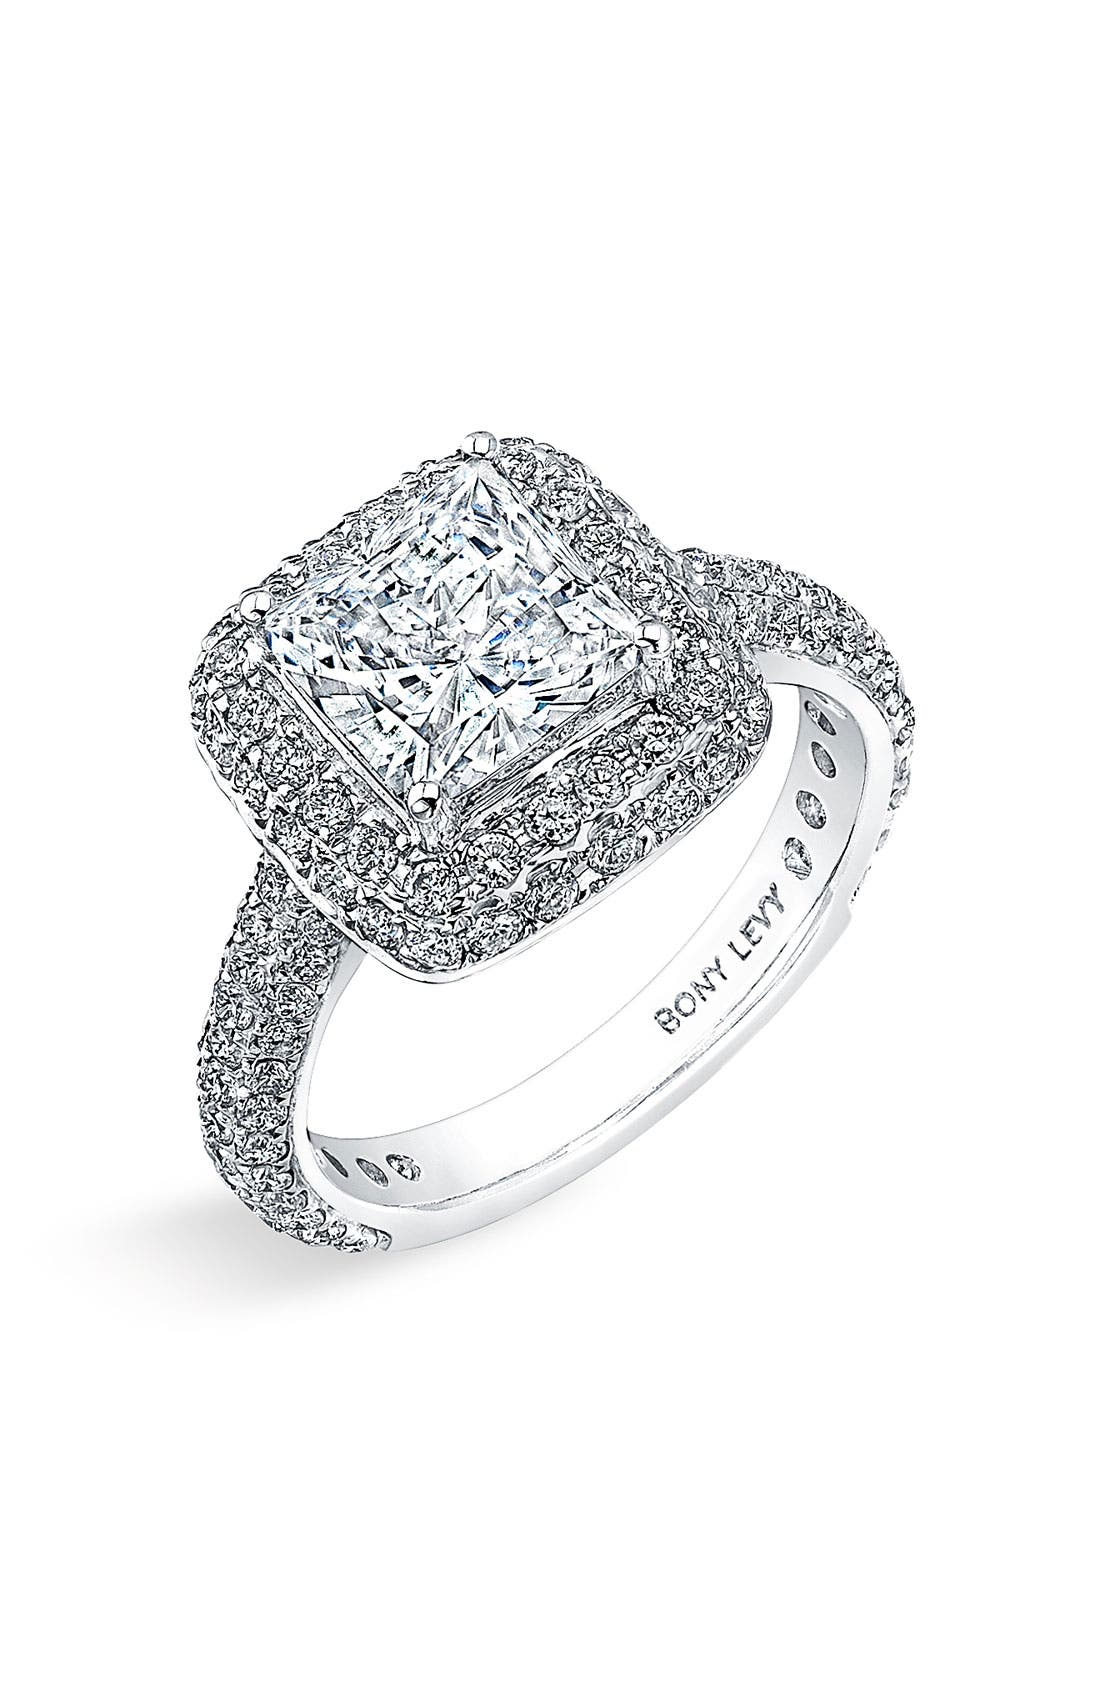 Main Image - Bony Levy Multi-Row Micro Pavé Diamond Engagement Ring Setting (Nordstrom Exclusive)